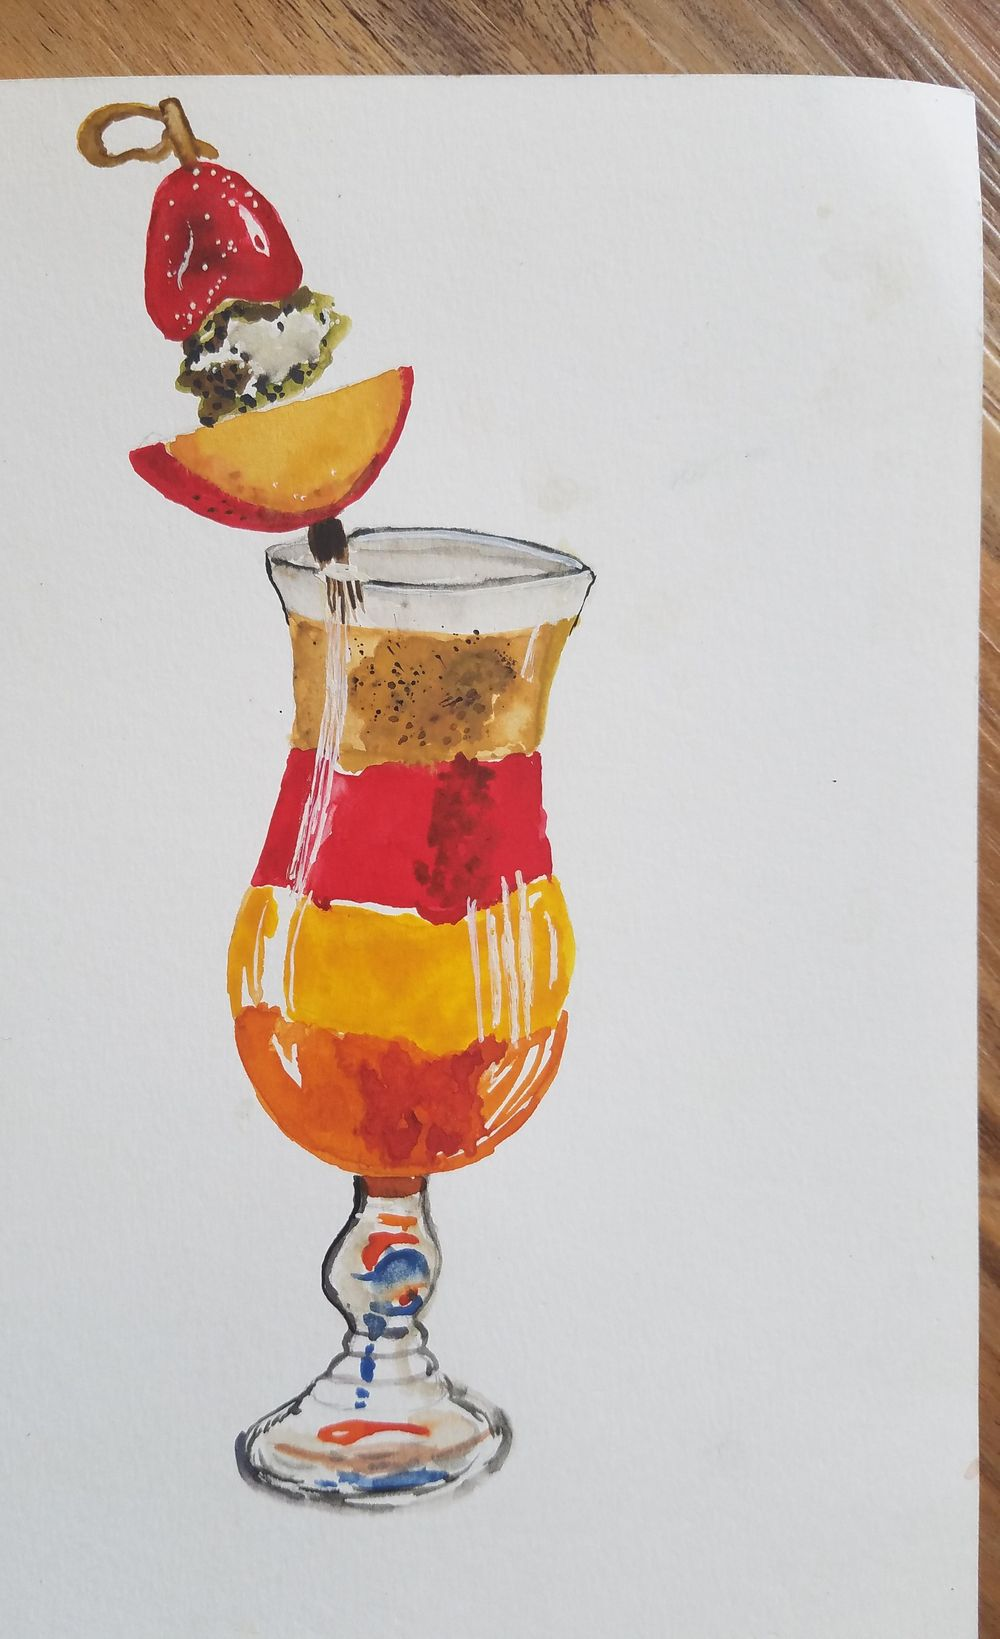 Food Illustrations - image 1 - student project